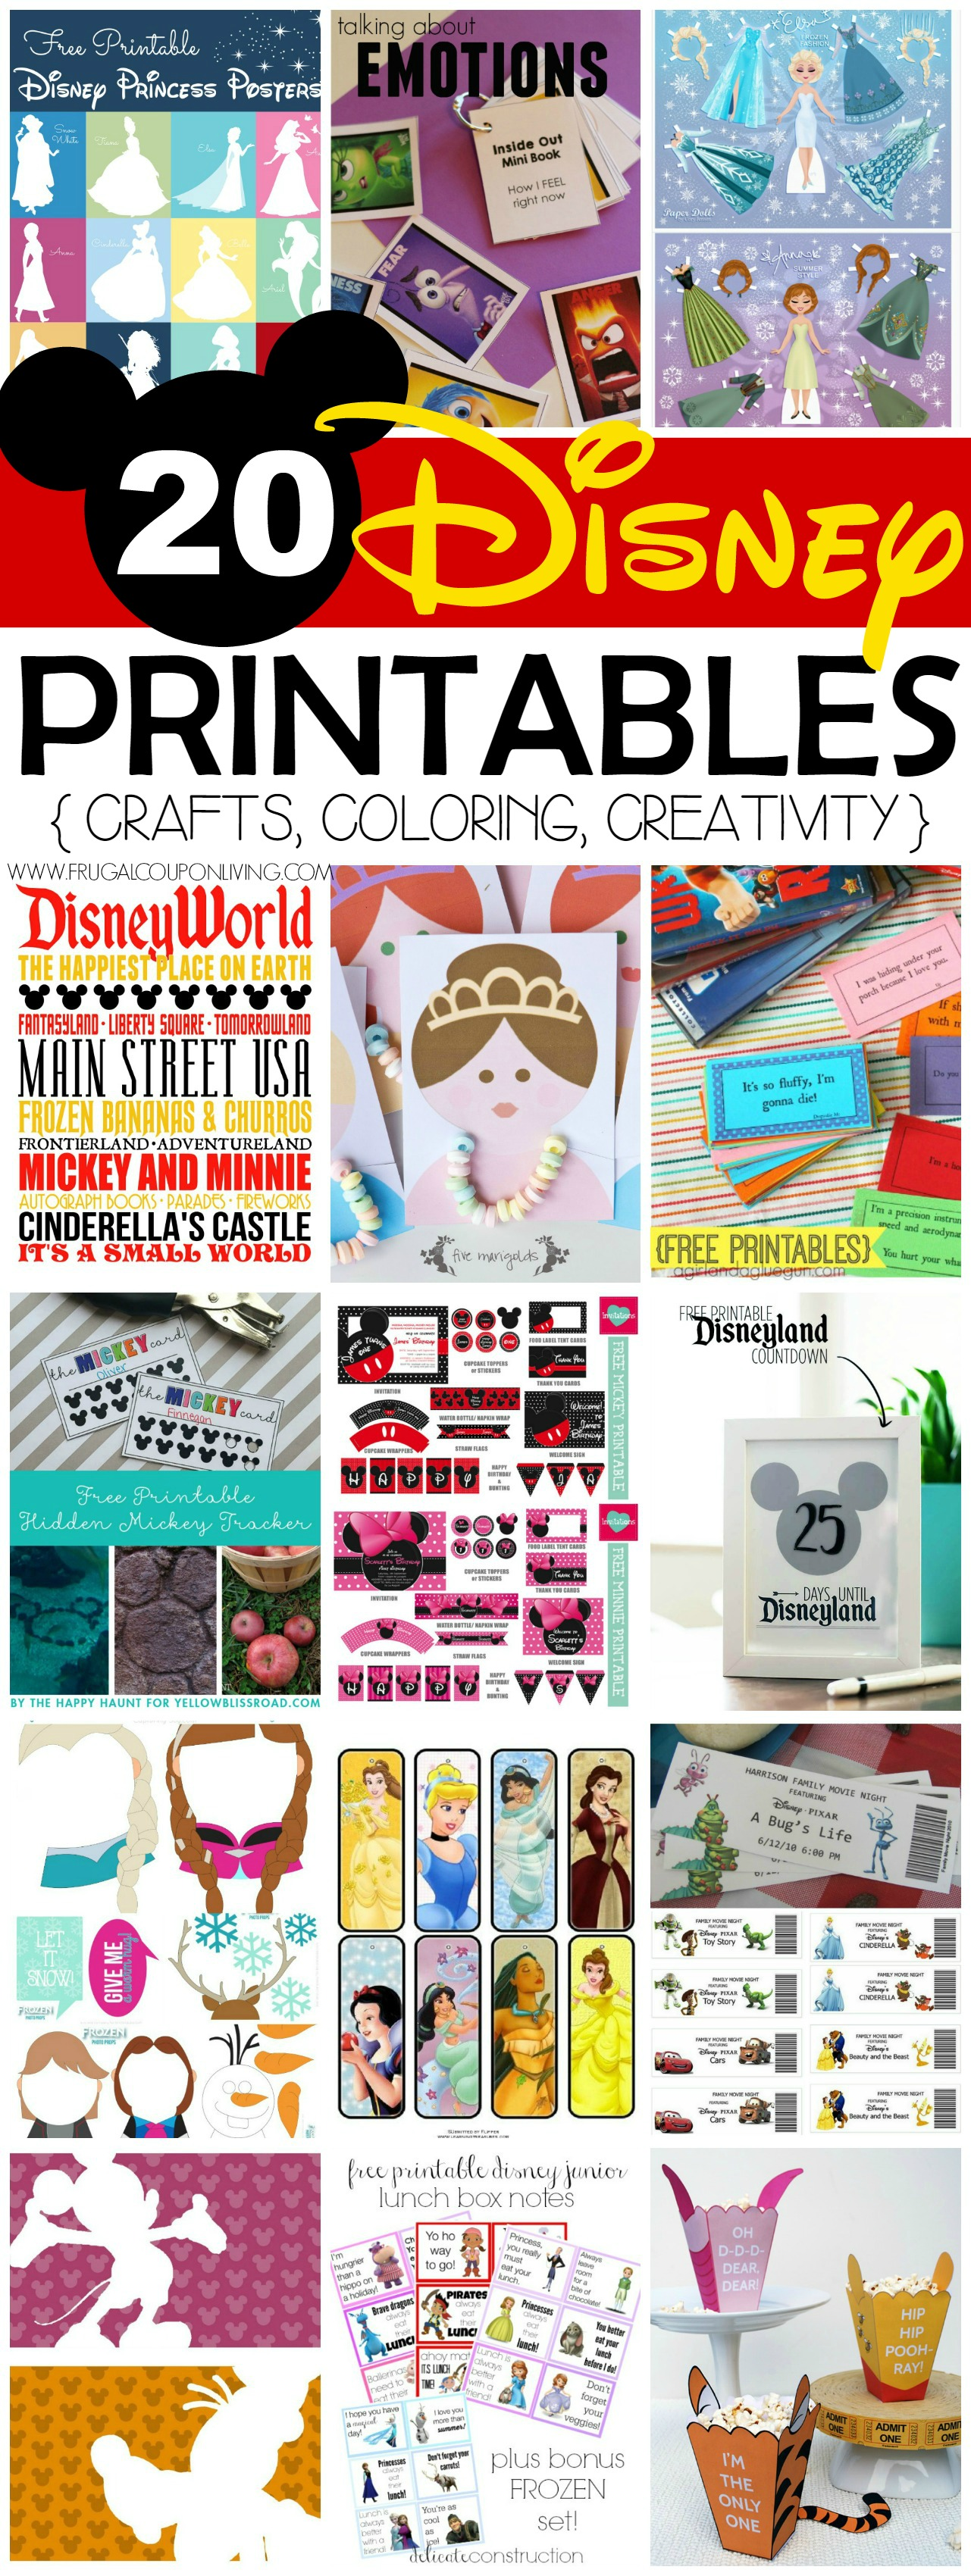 photo regarding Disney World Printable Coupons referred to as 20 Free of charge Disney Printables - Crafts, Coloring, Creative imagination